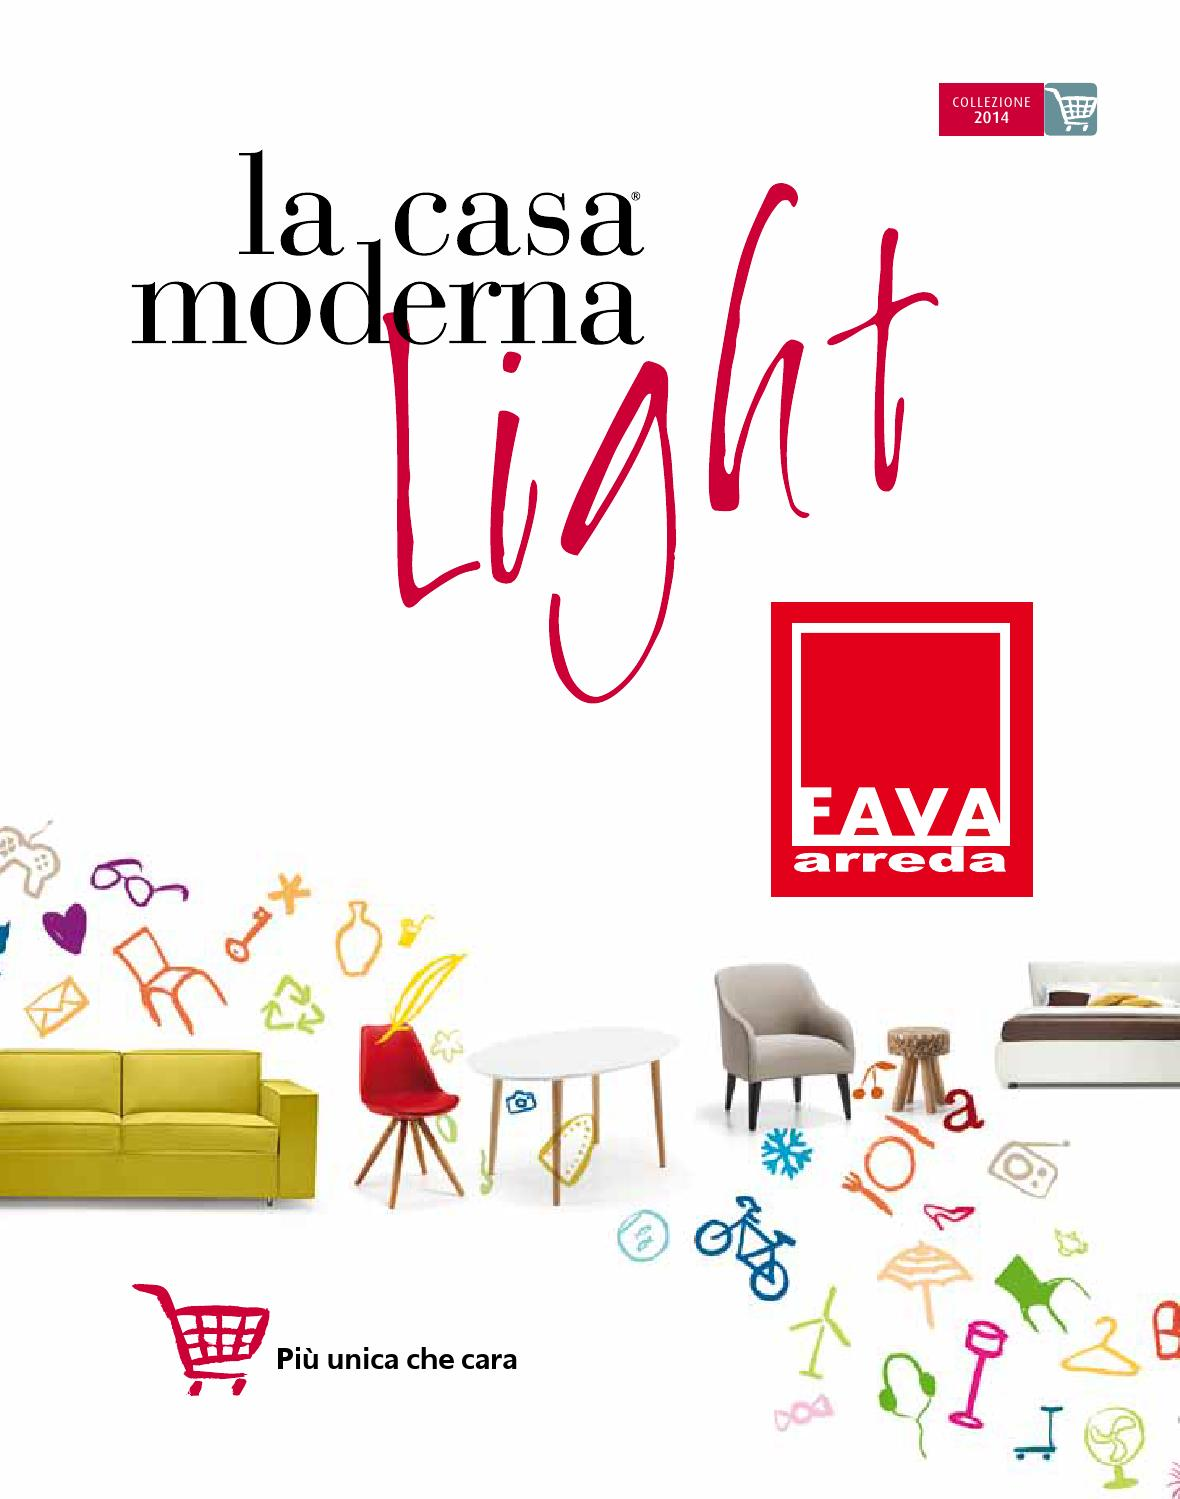 Fava arreda la casa moderna light by ciociaria24 issuu for Fava arreda